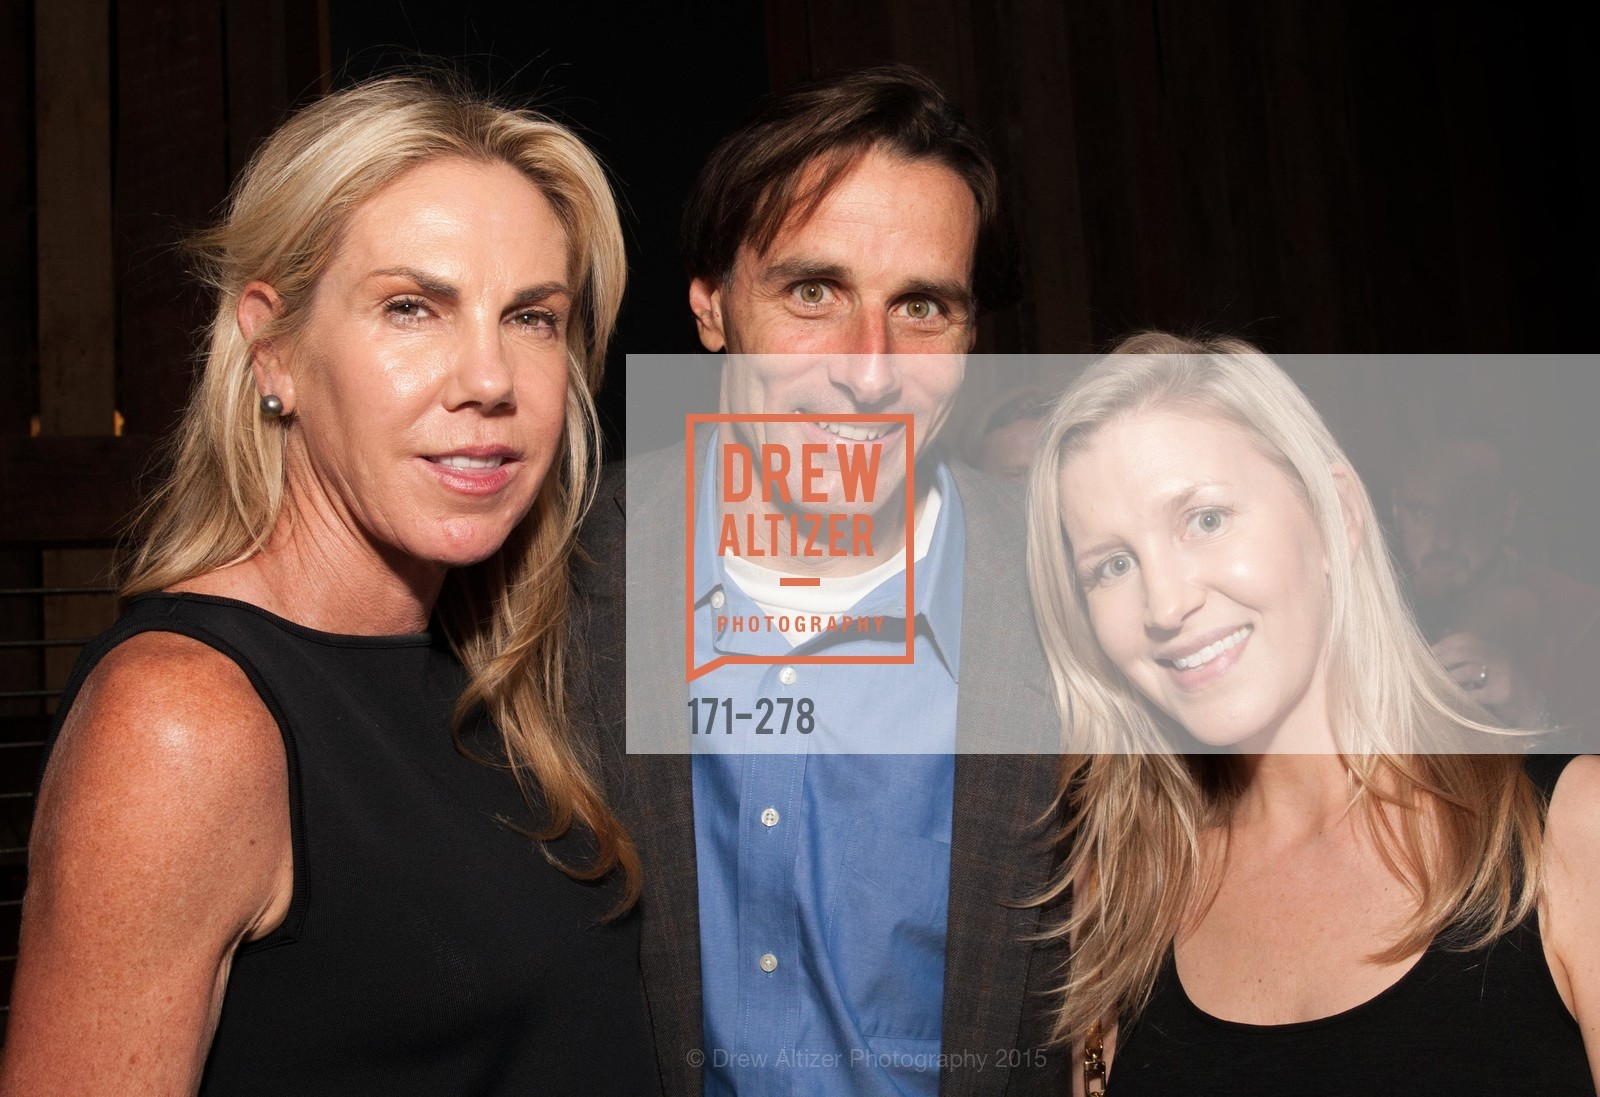 Tracy Skytt, Paul Pelosi, Jamie Rooker, San Francisco 2.0 Premiere, Sundance Kabuki Cinema, September 3rd, 2015,Drew Altizer, Drew Altizer Photography, full-service agency, private events, San Francisco photographer, photographer california